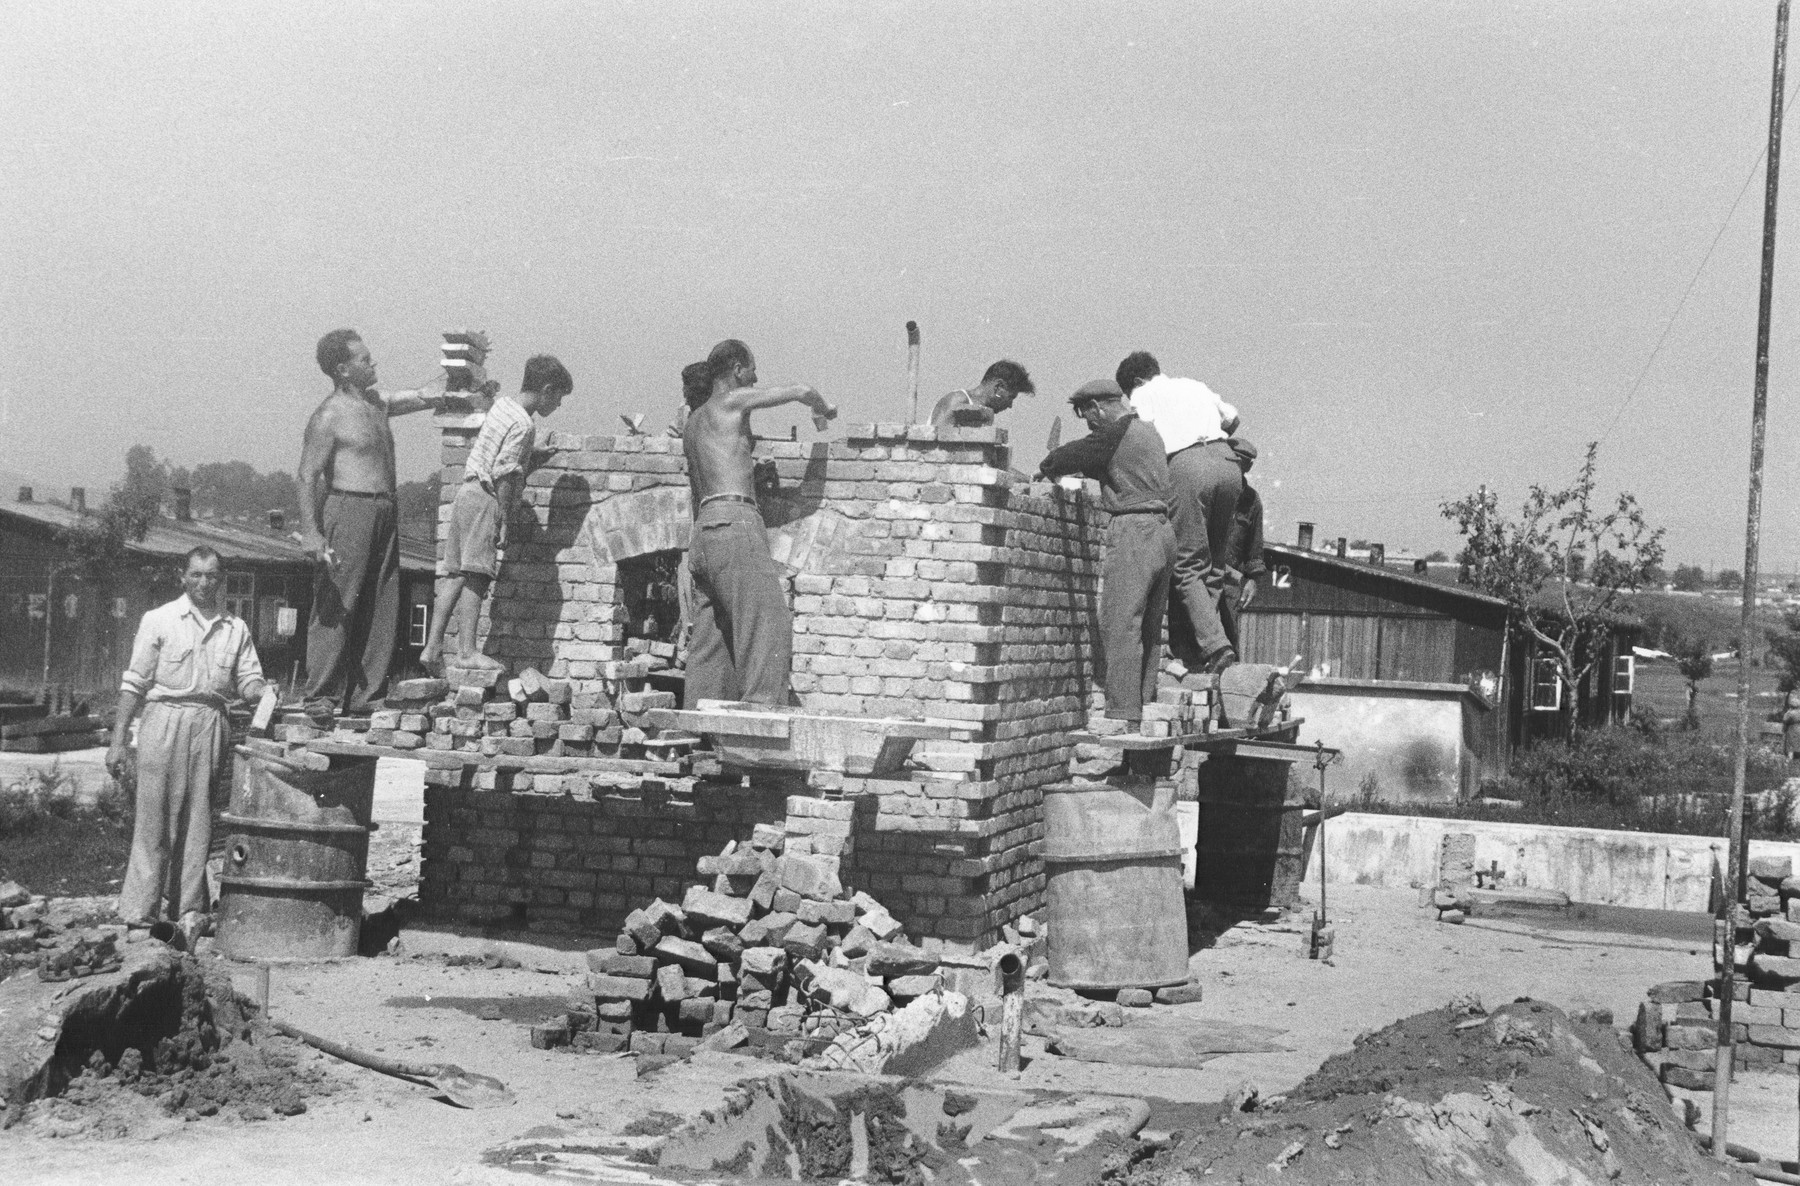 Under the guidance of an ORT instructor, Jewish DPs learn bricklaying by constructing a small brick building at a Jewish displaced persons camp in Linz.